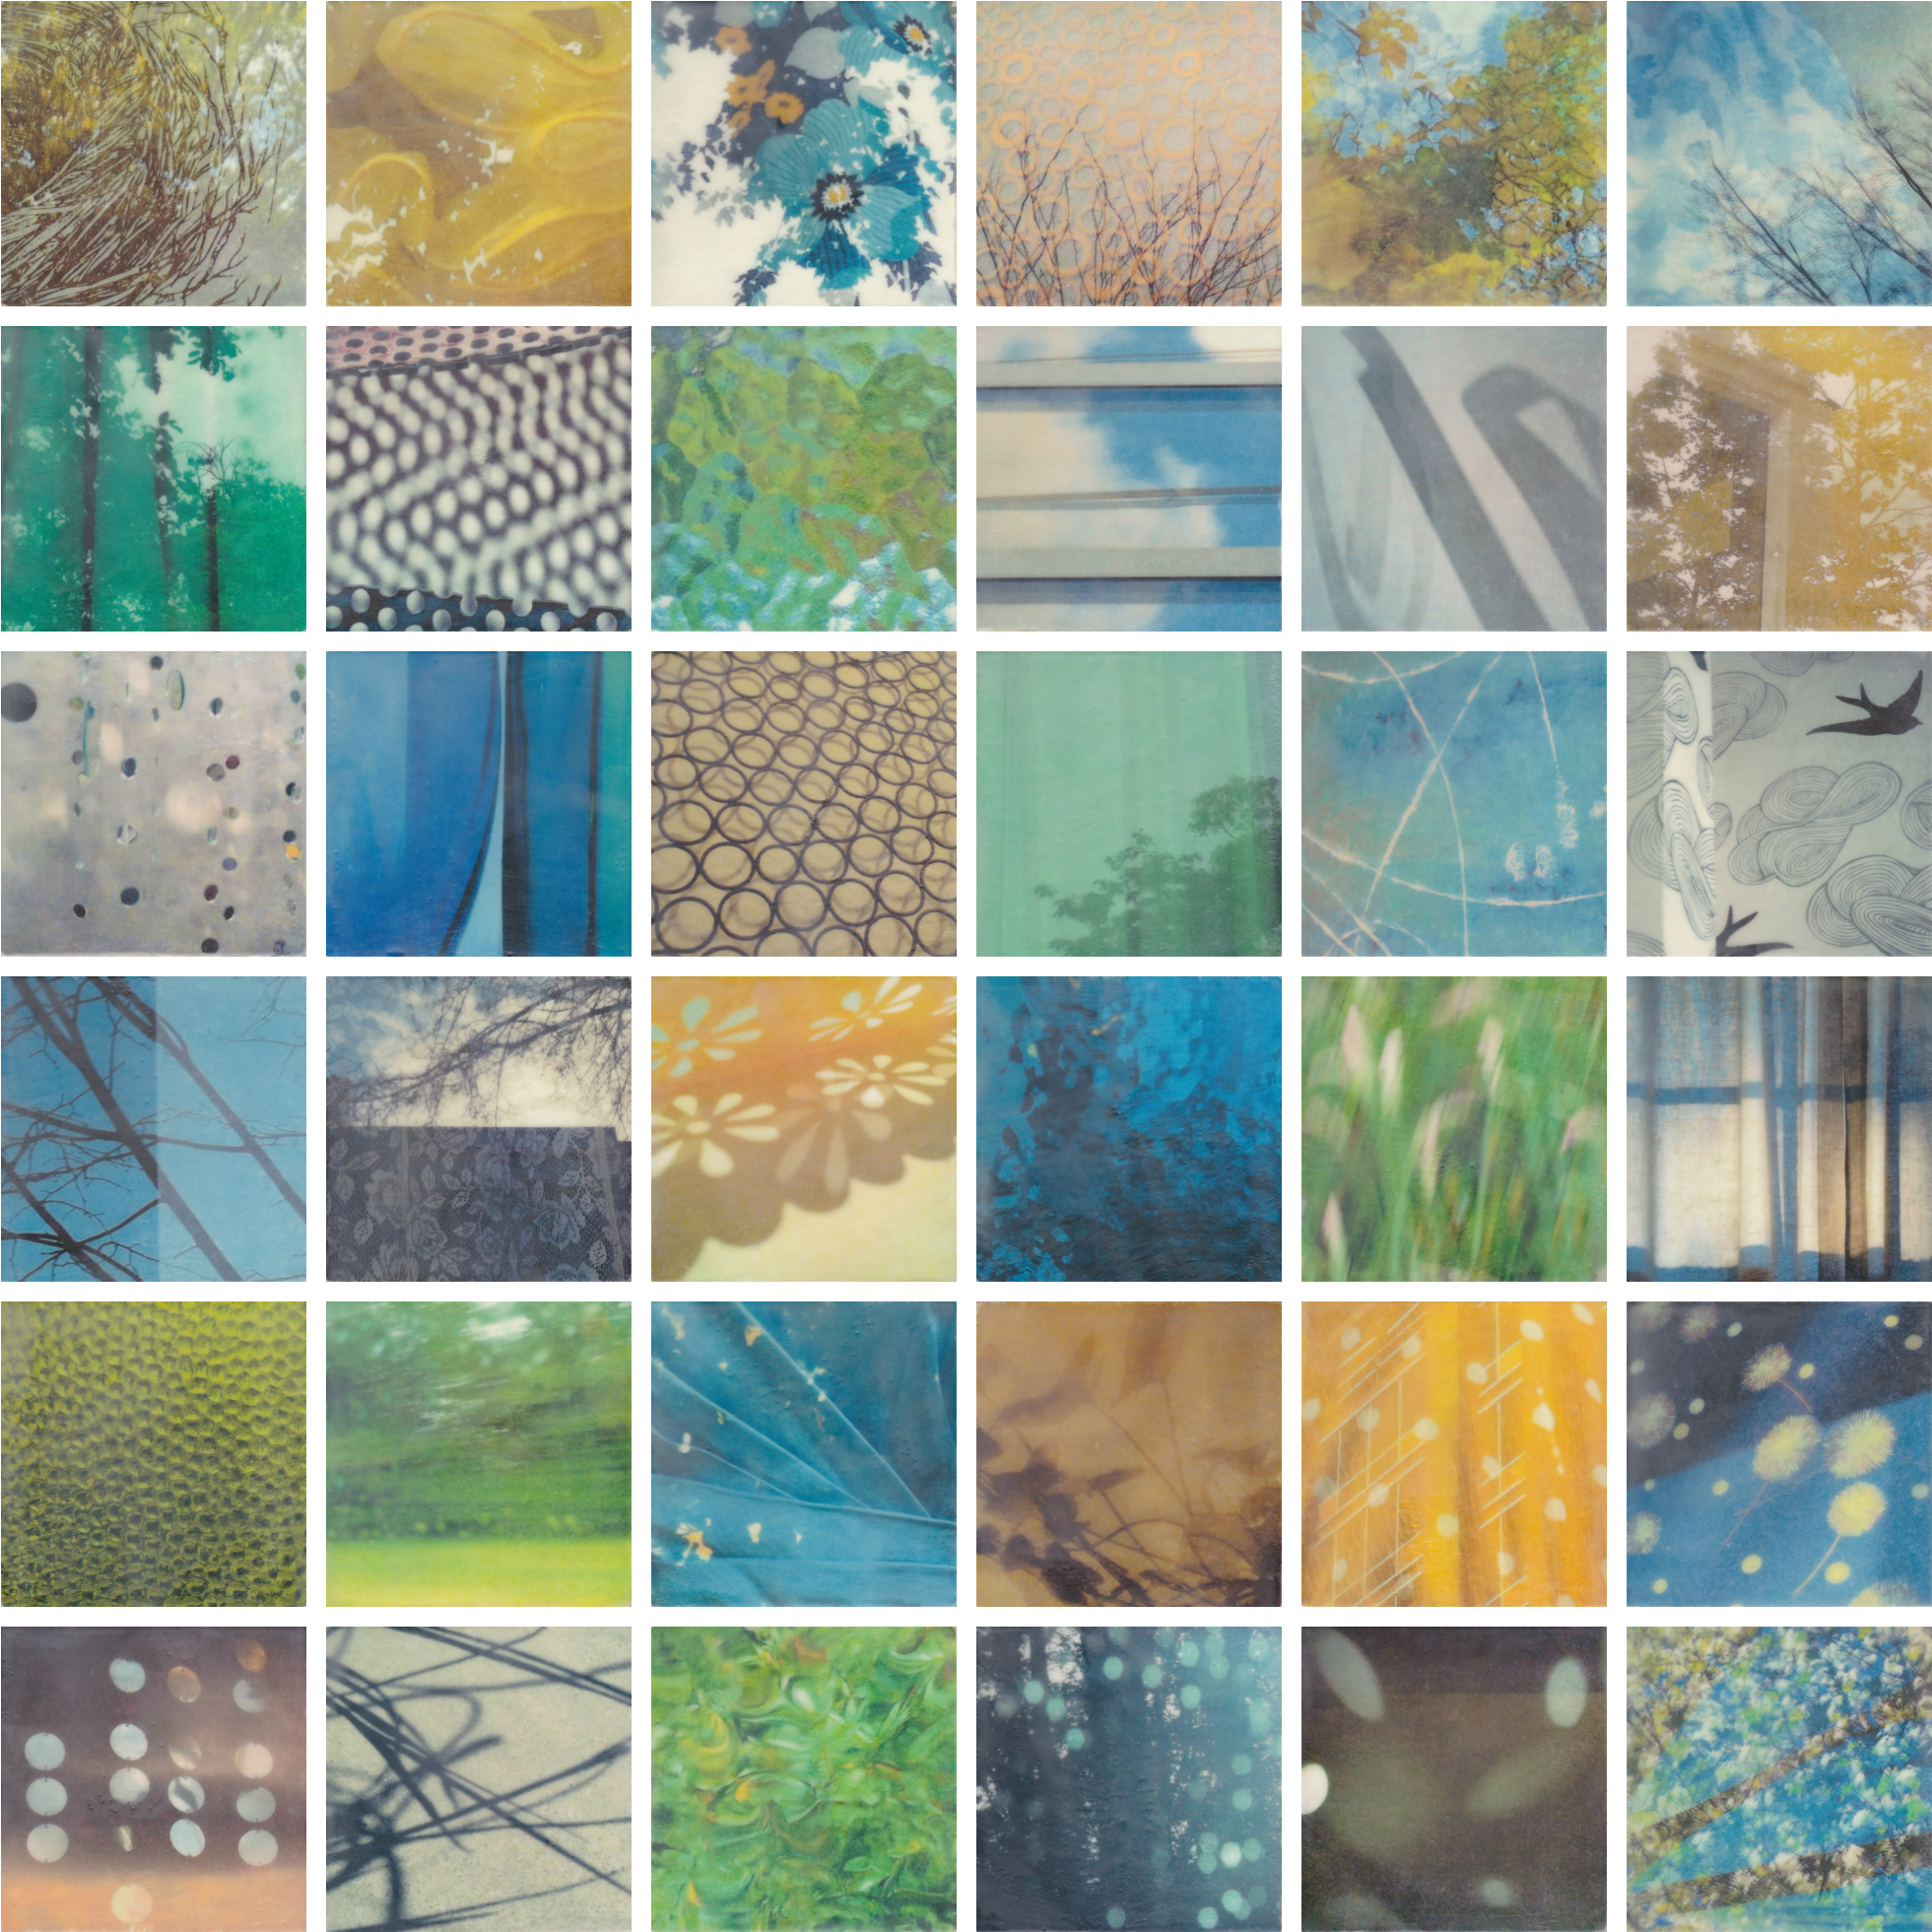 Glimpse by Erin Keane : photography with encaustic beeswax : 6 x 6 inches each